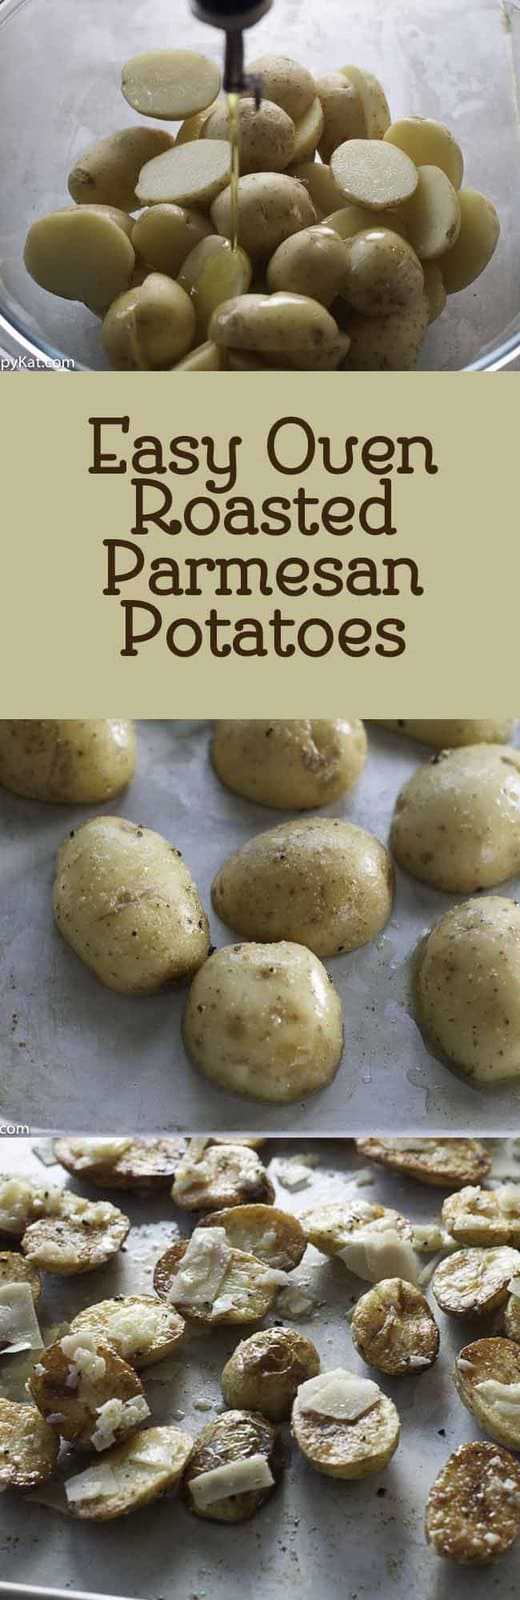 Make easy oven roasted Parmesan Potatoes, it's so easy to make these delicious roasted potatoes.